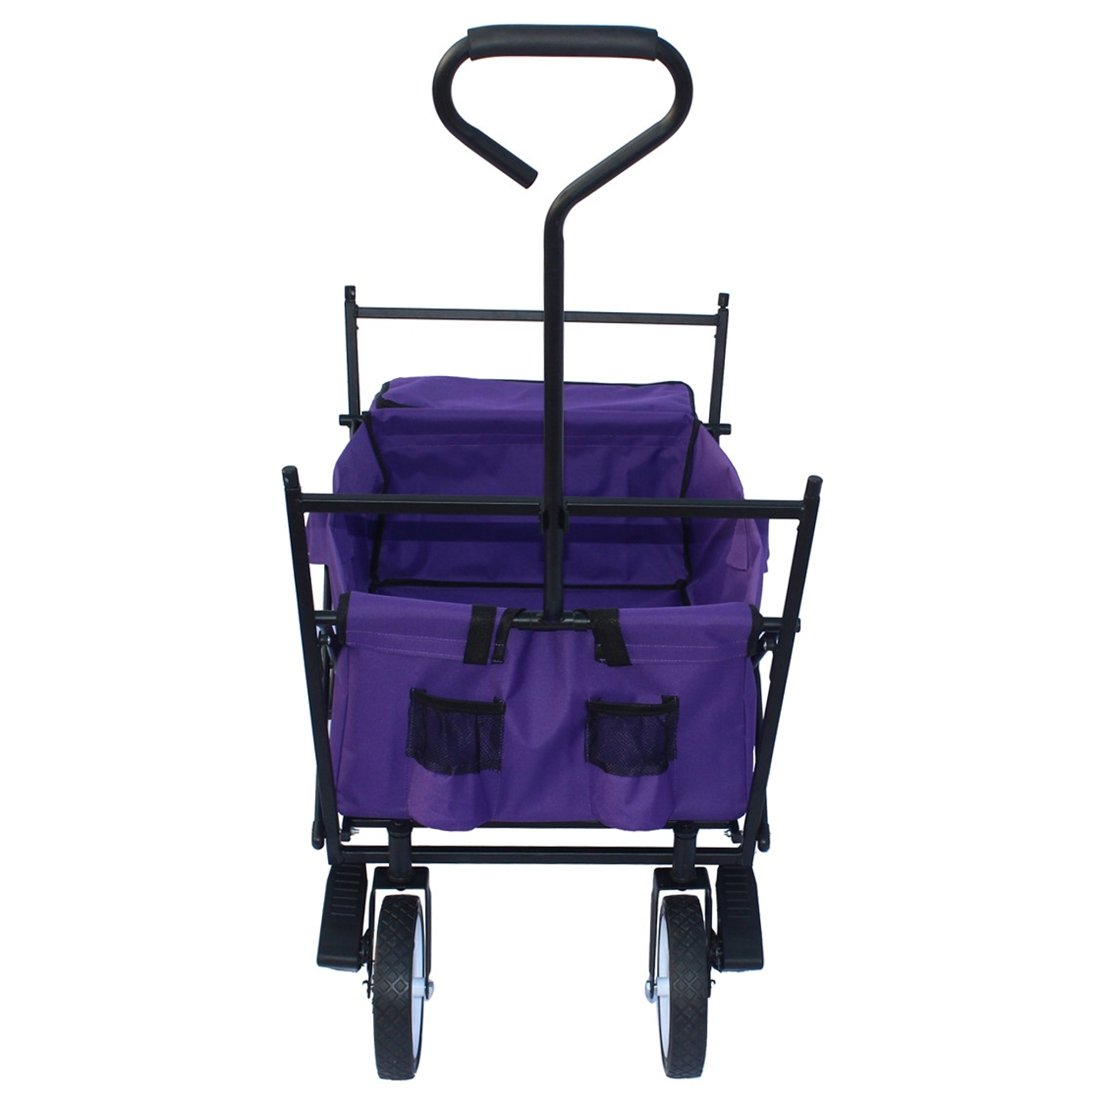 Sports God Folding Wagon Collapsible Utility Graden Cart with Removable Canopy + Storage Basket + FREE Cooler (Purple) by Sports God (Image #4)